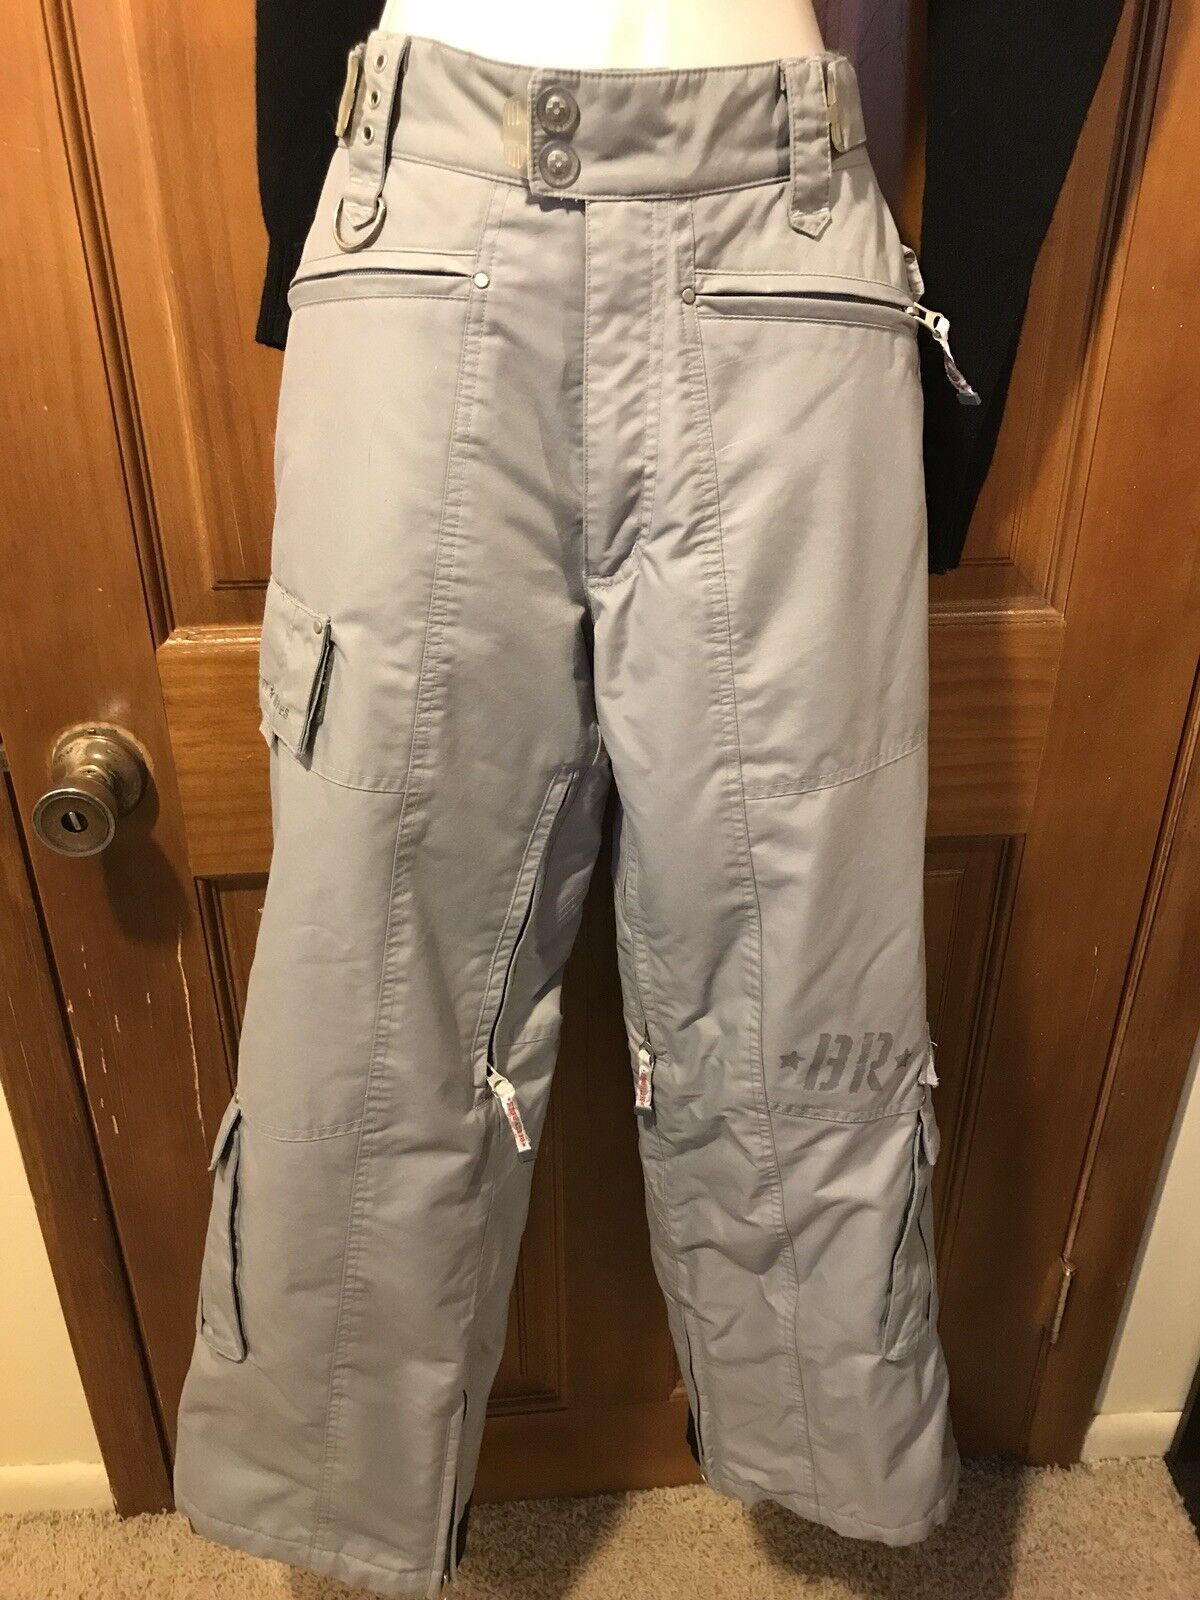 Betty Rides  Snowboarding Pants, Size S  up to 60% off